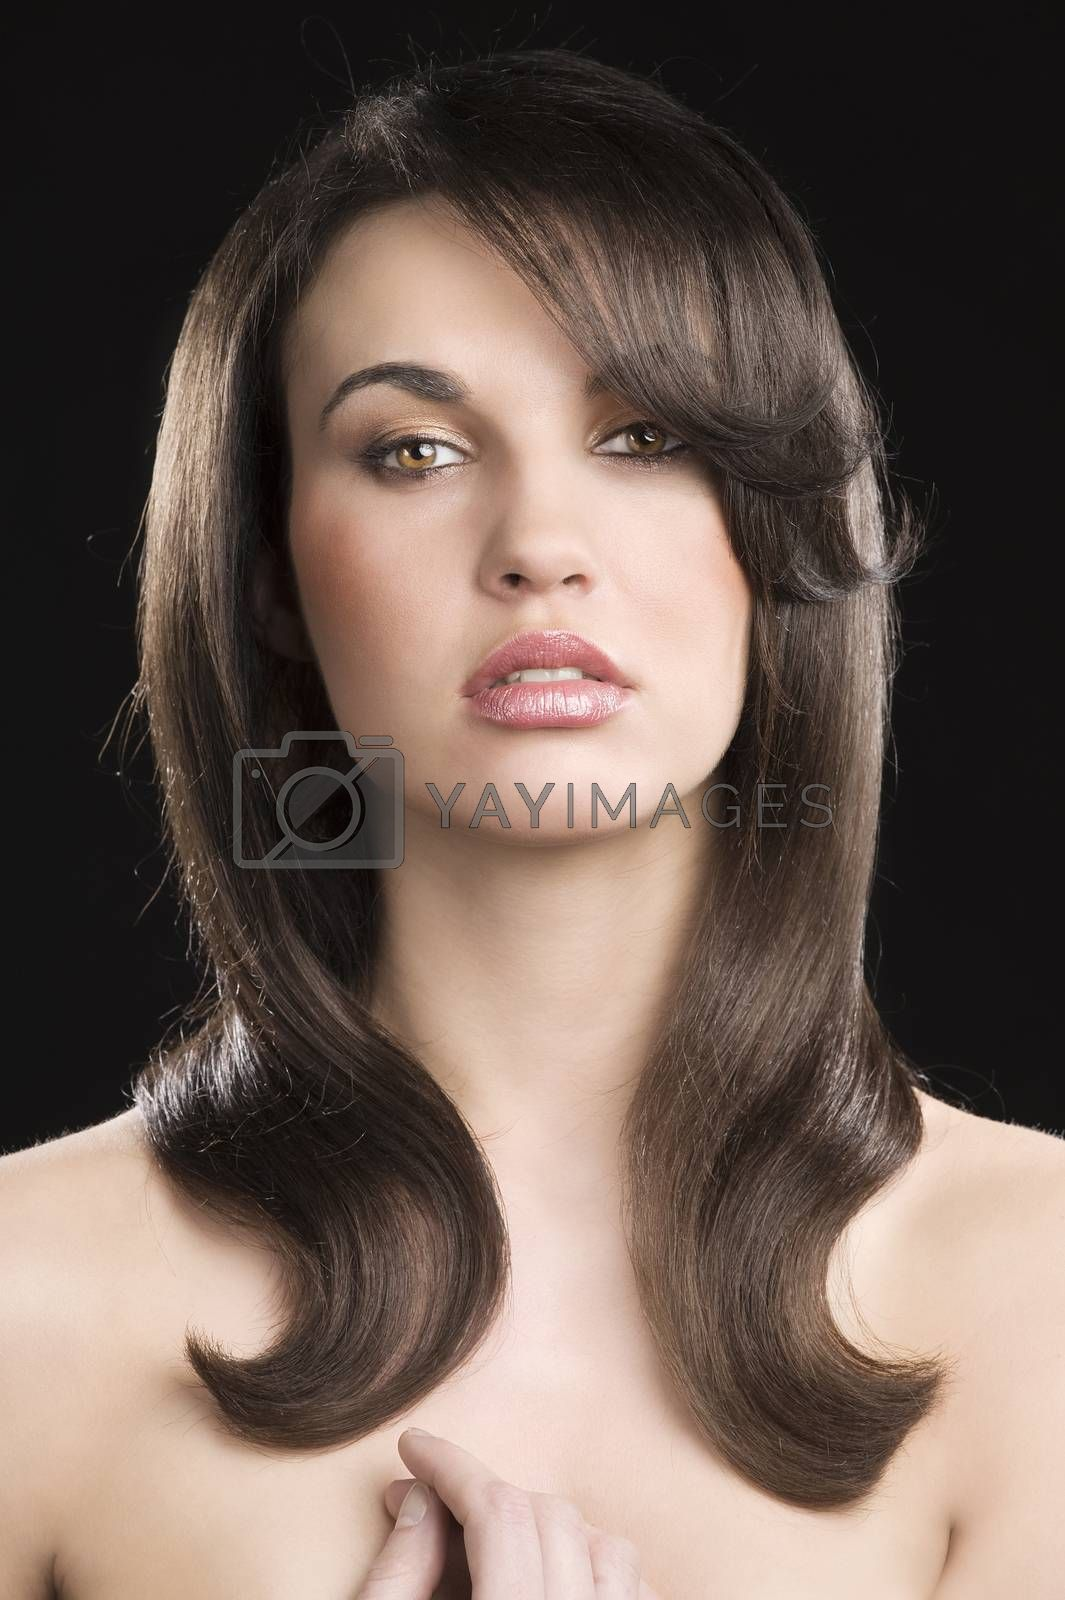 Royalty free image of the hairstyle by fotoCD